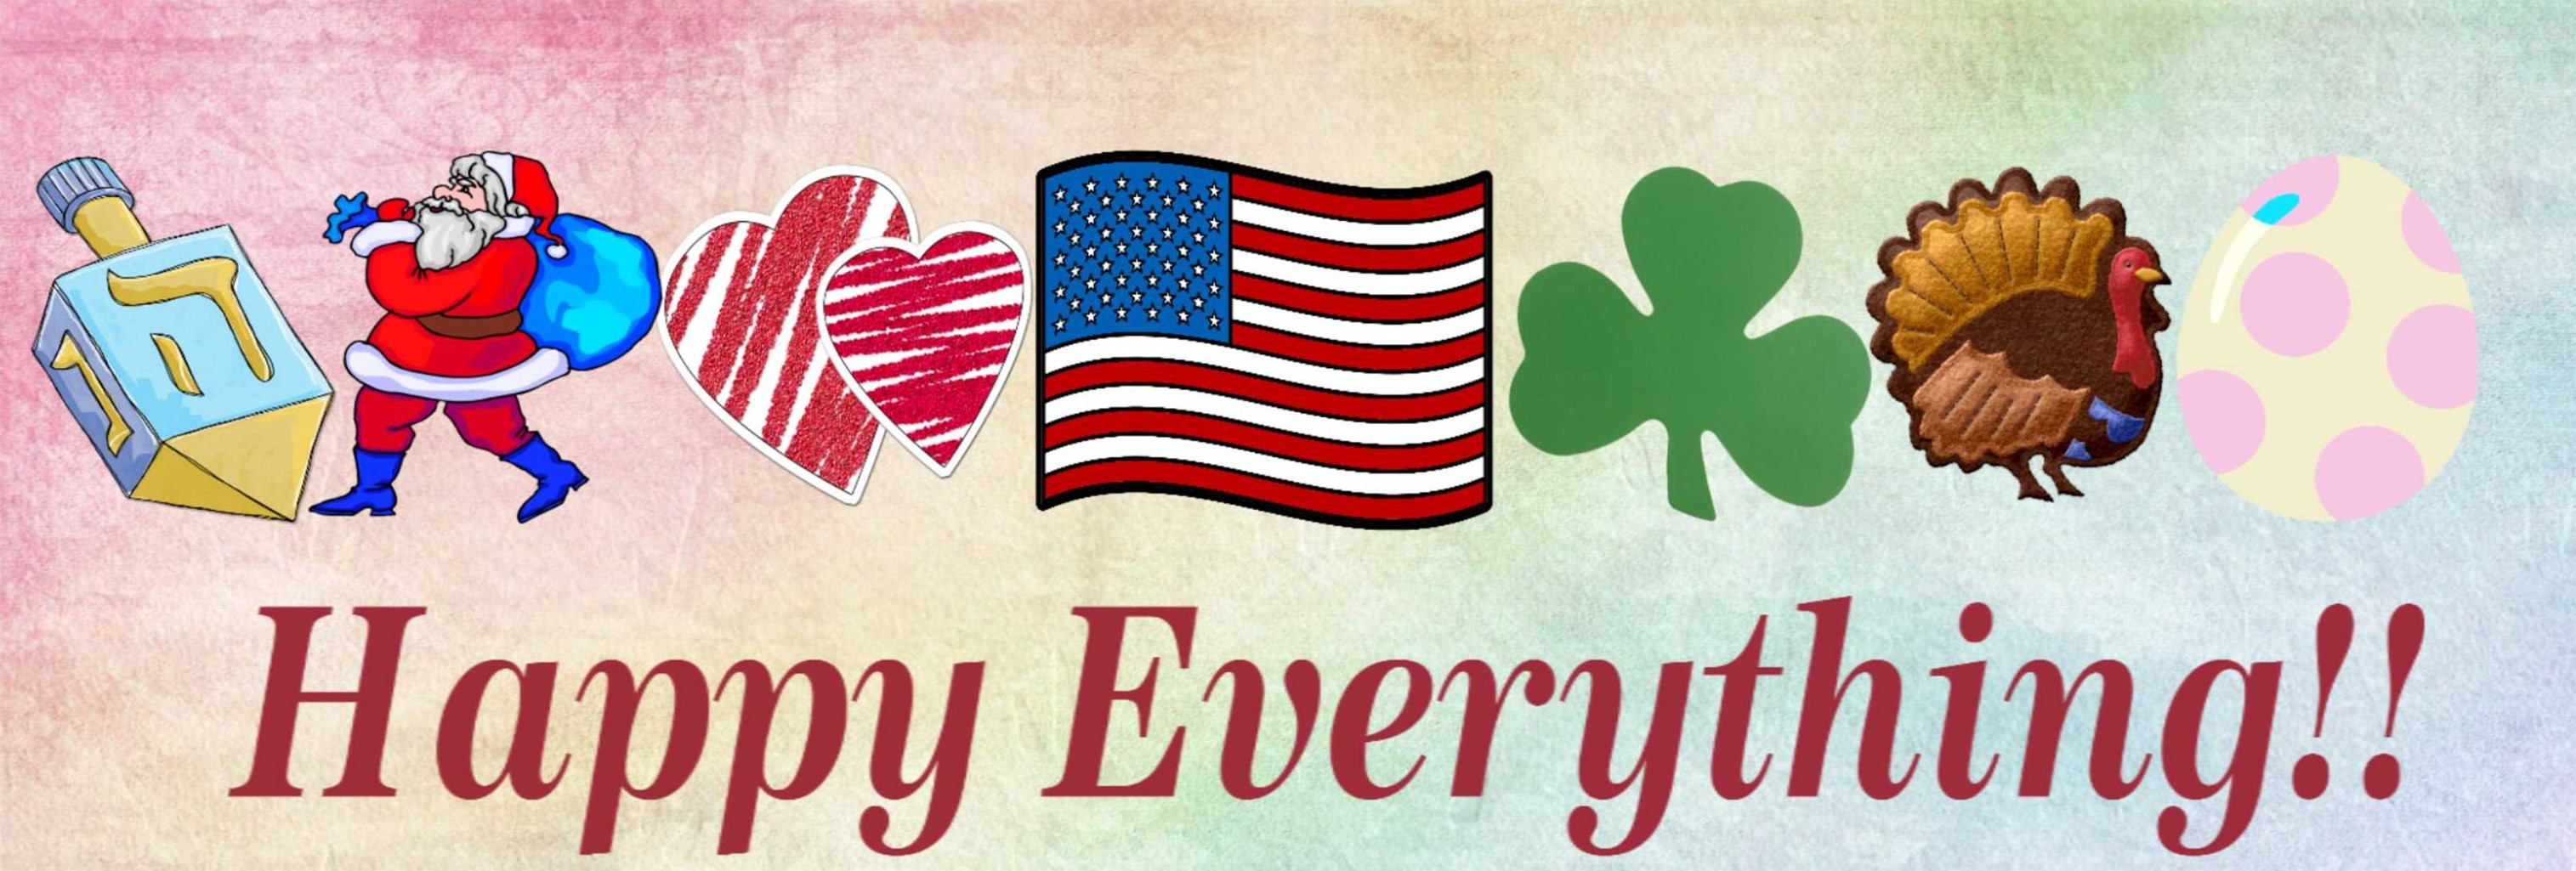 Happy Everything holiday image of a dreidel, santa, hearts, american flag, shamrock, turkey, easter egg